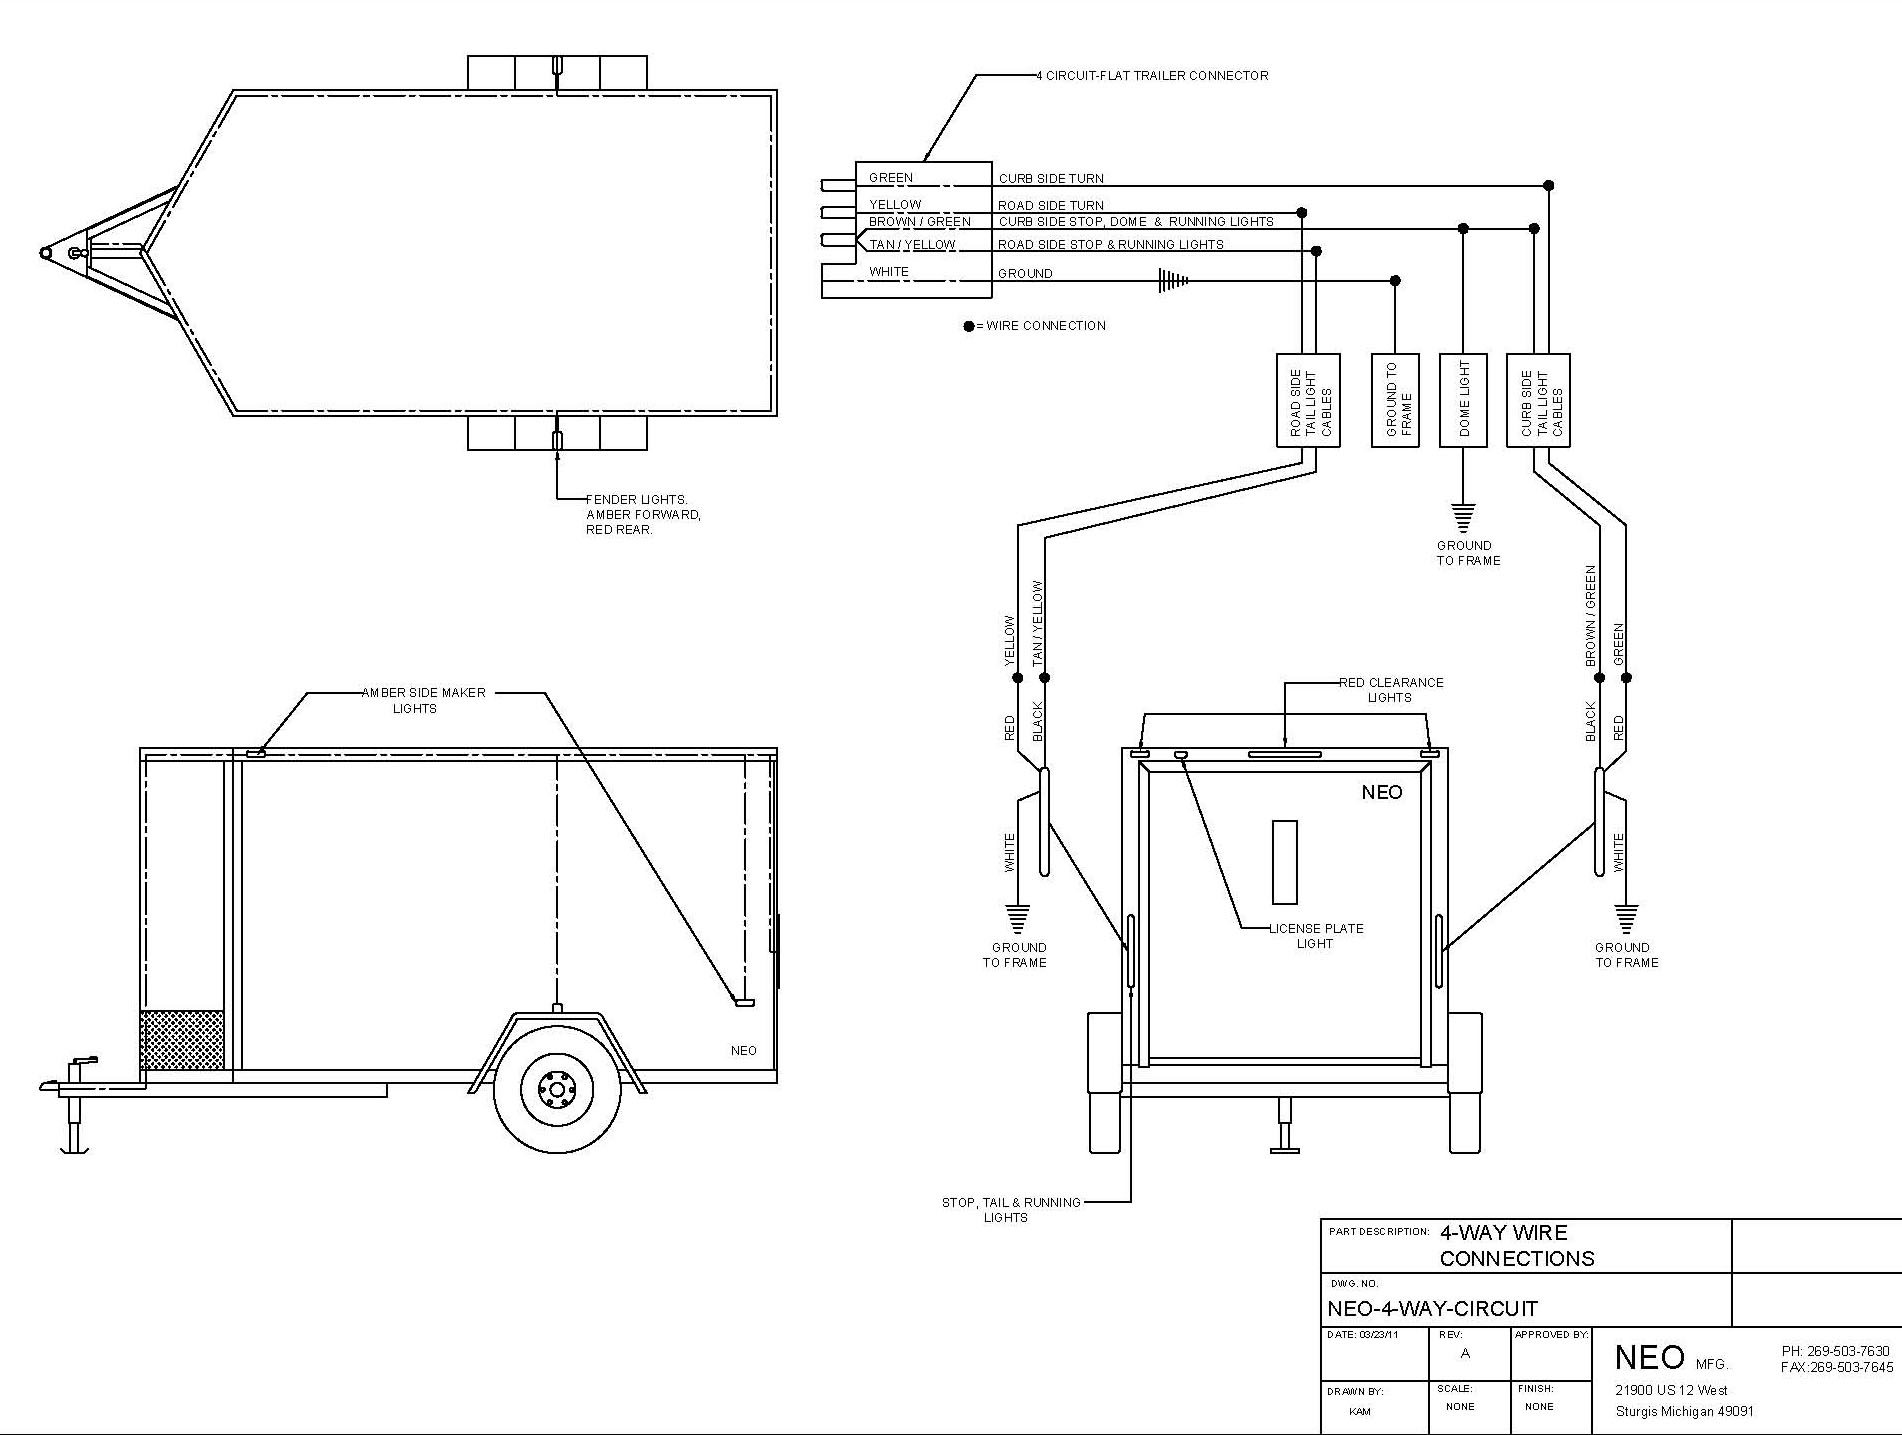 Wiring Diagram For Car Trailer With Electric Kes   Wiring Diagram on 4 pin trailer diagram, trailer plug diagram, 7 pin rv wiring, 7 pronge trailer connector diagram, 7 wire diagram, 7 pin trailer connector, 7 pin trailer lighting, 7 pin trailer brakes, 7 pin trailer tools, 7 pin tow wiring, 7 pin trailer wire,